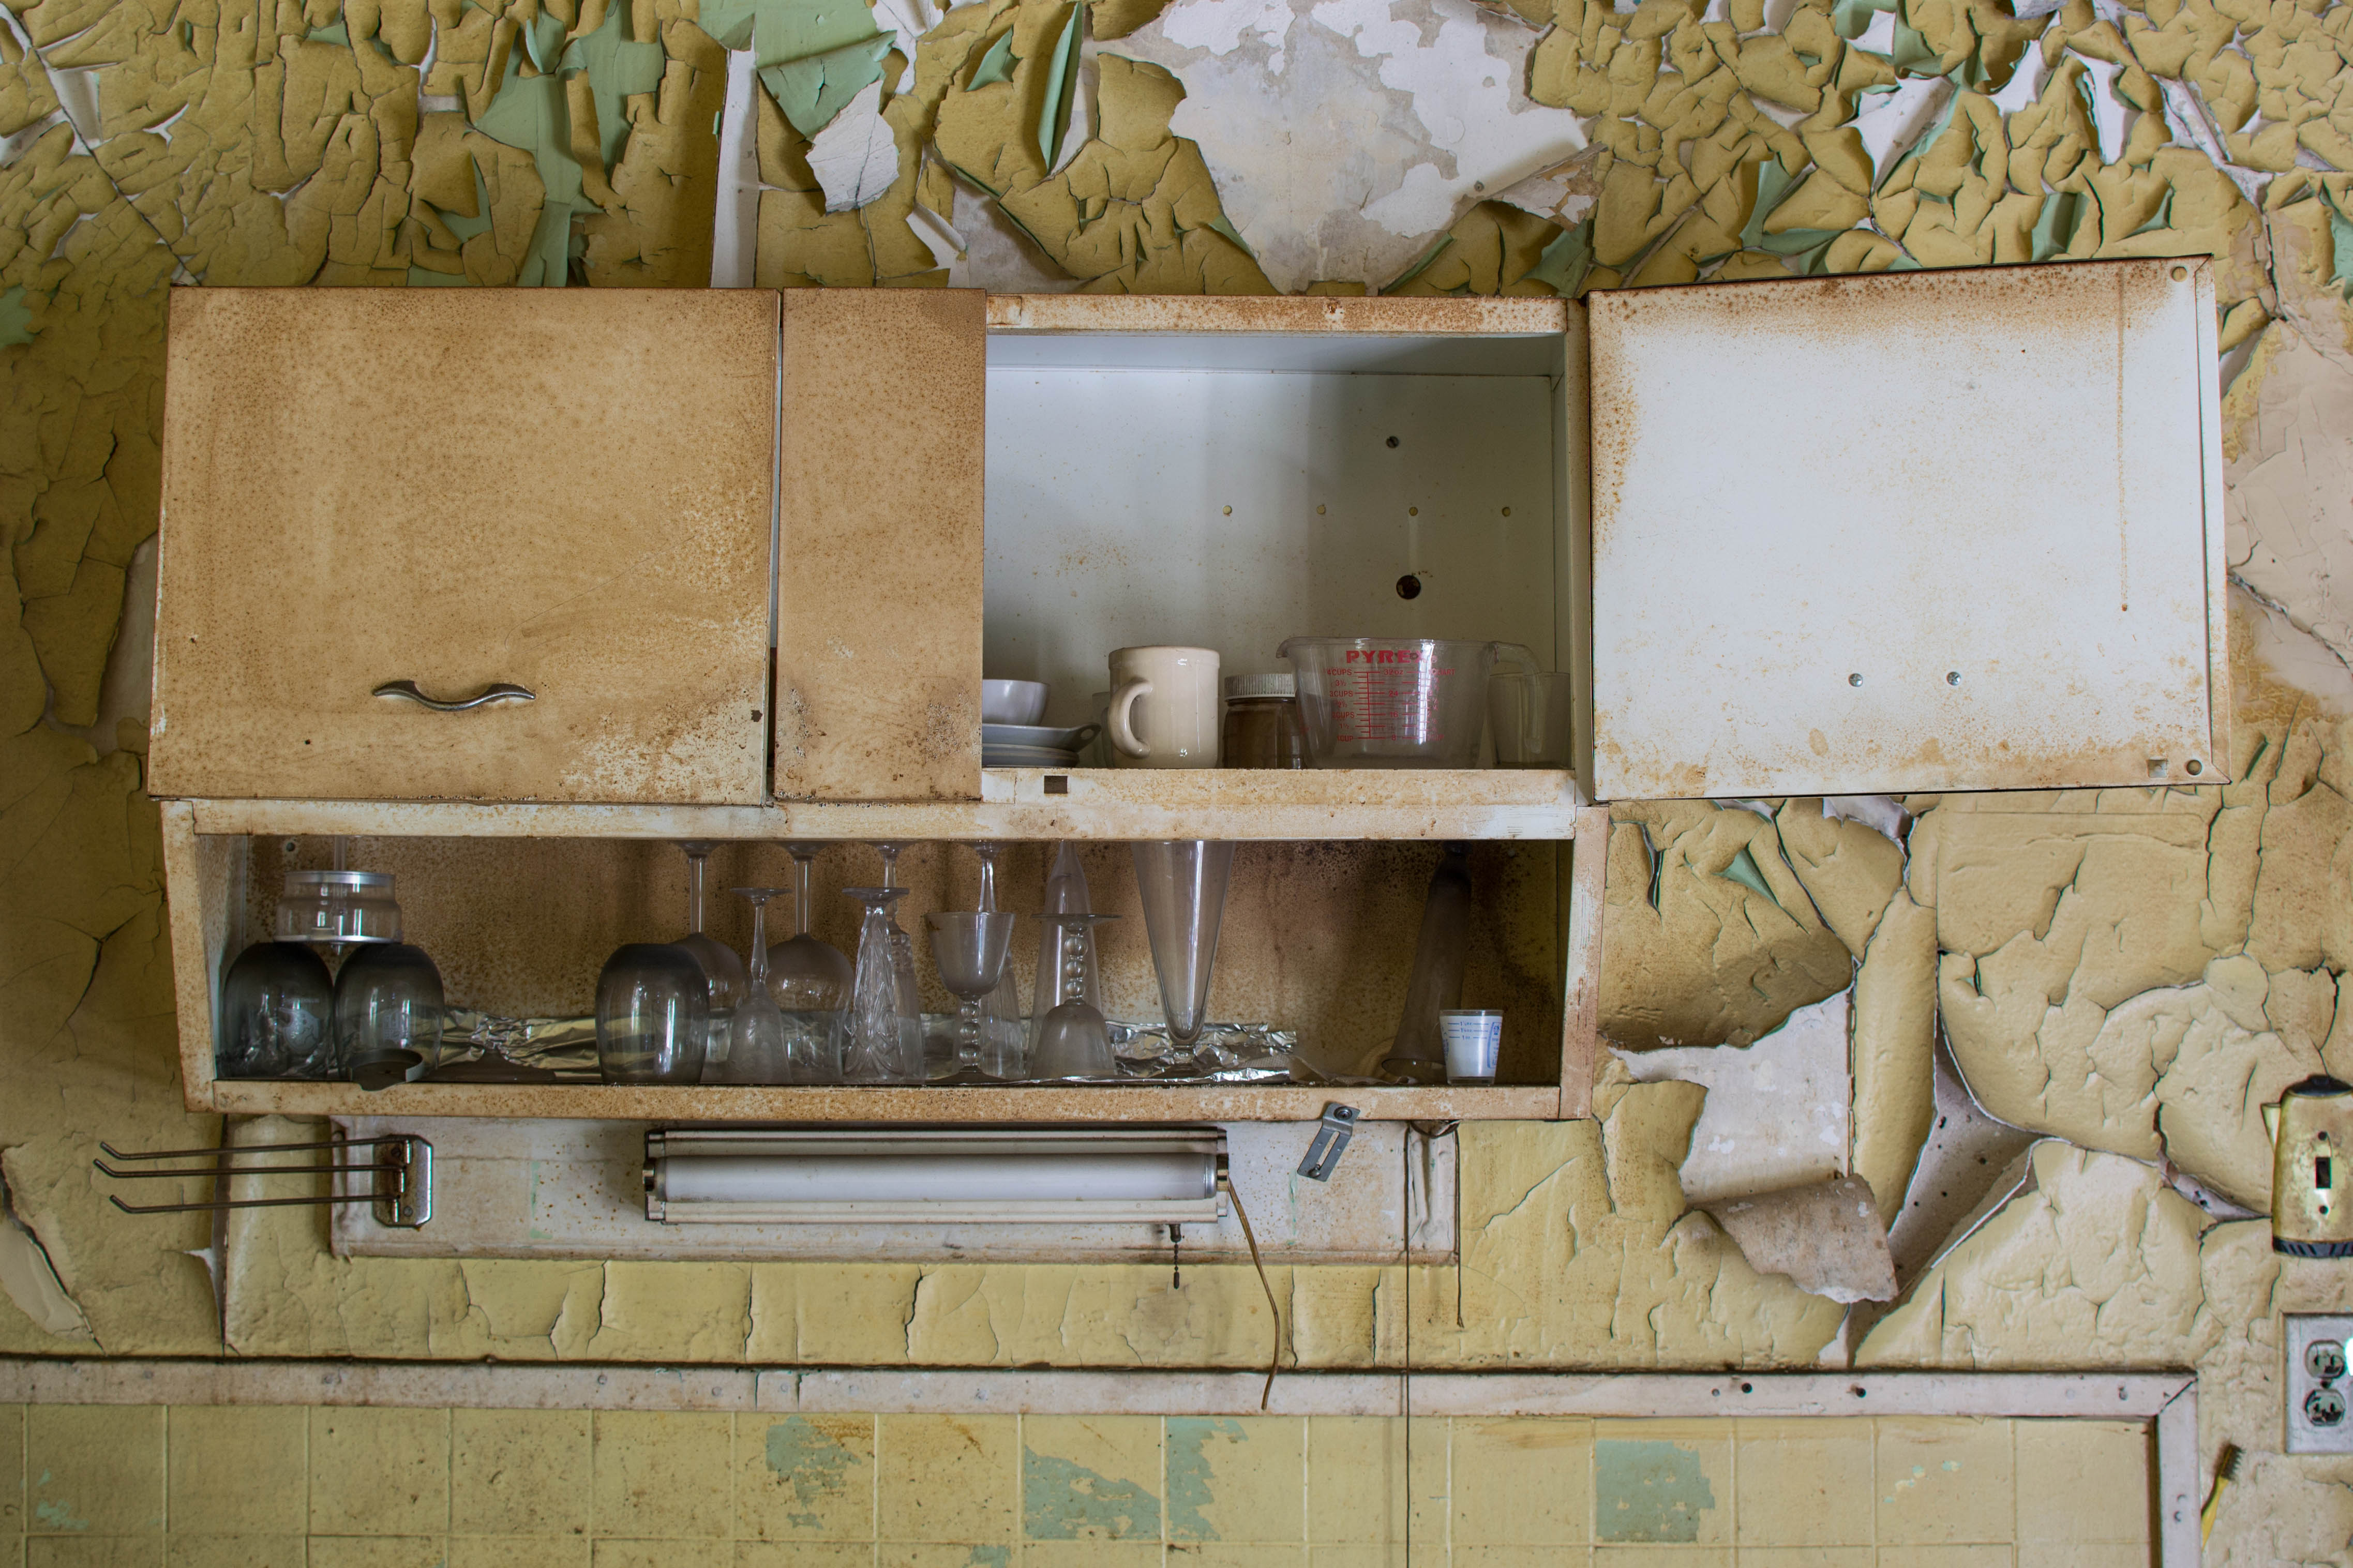 Abandoned, Not Forgotten: A Look at the Haunting Beauty of Modern Ruins